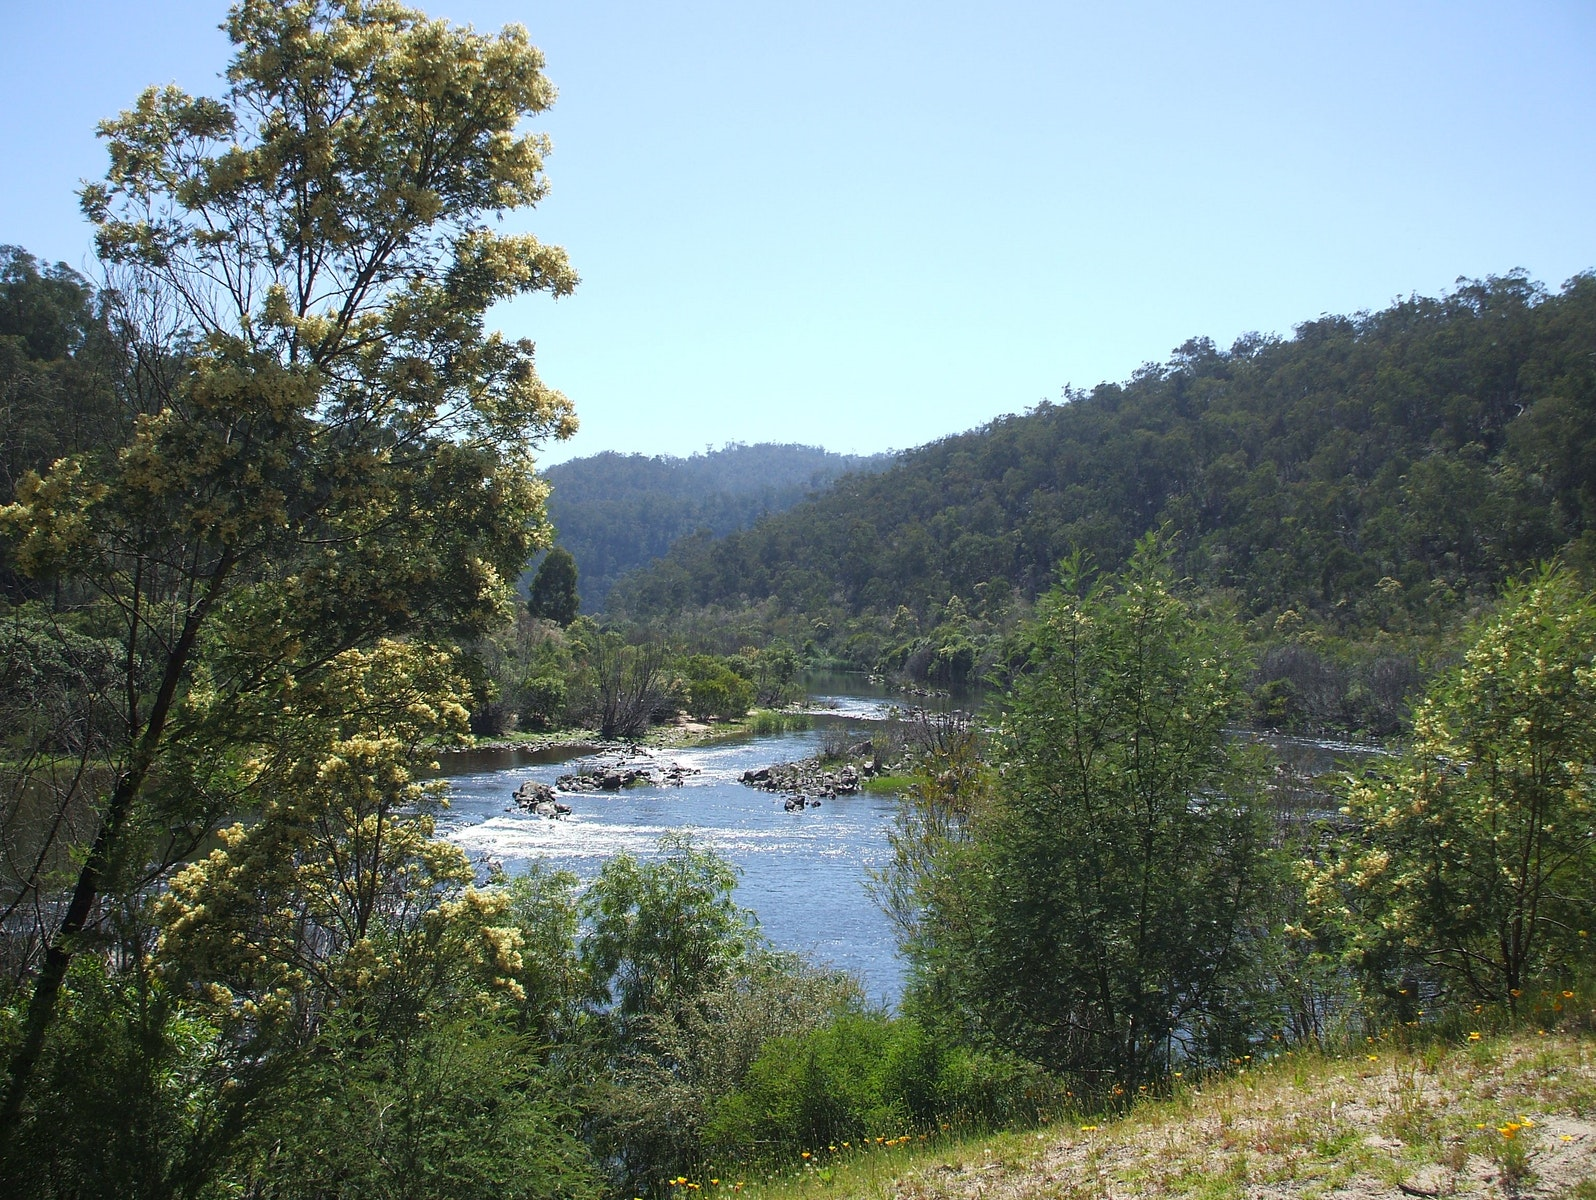 Snowy River, magnificent mountains